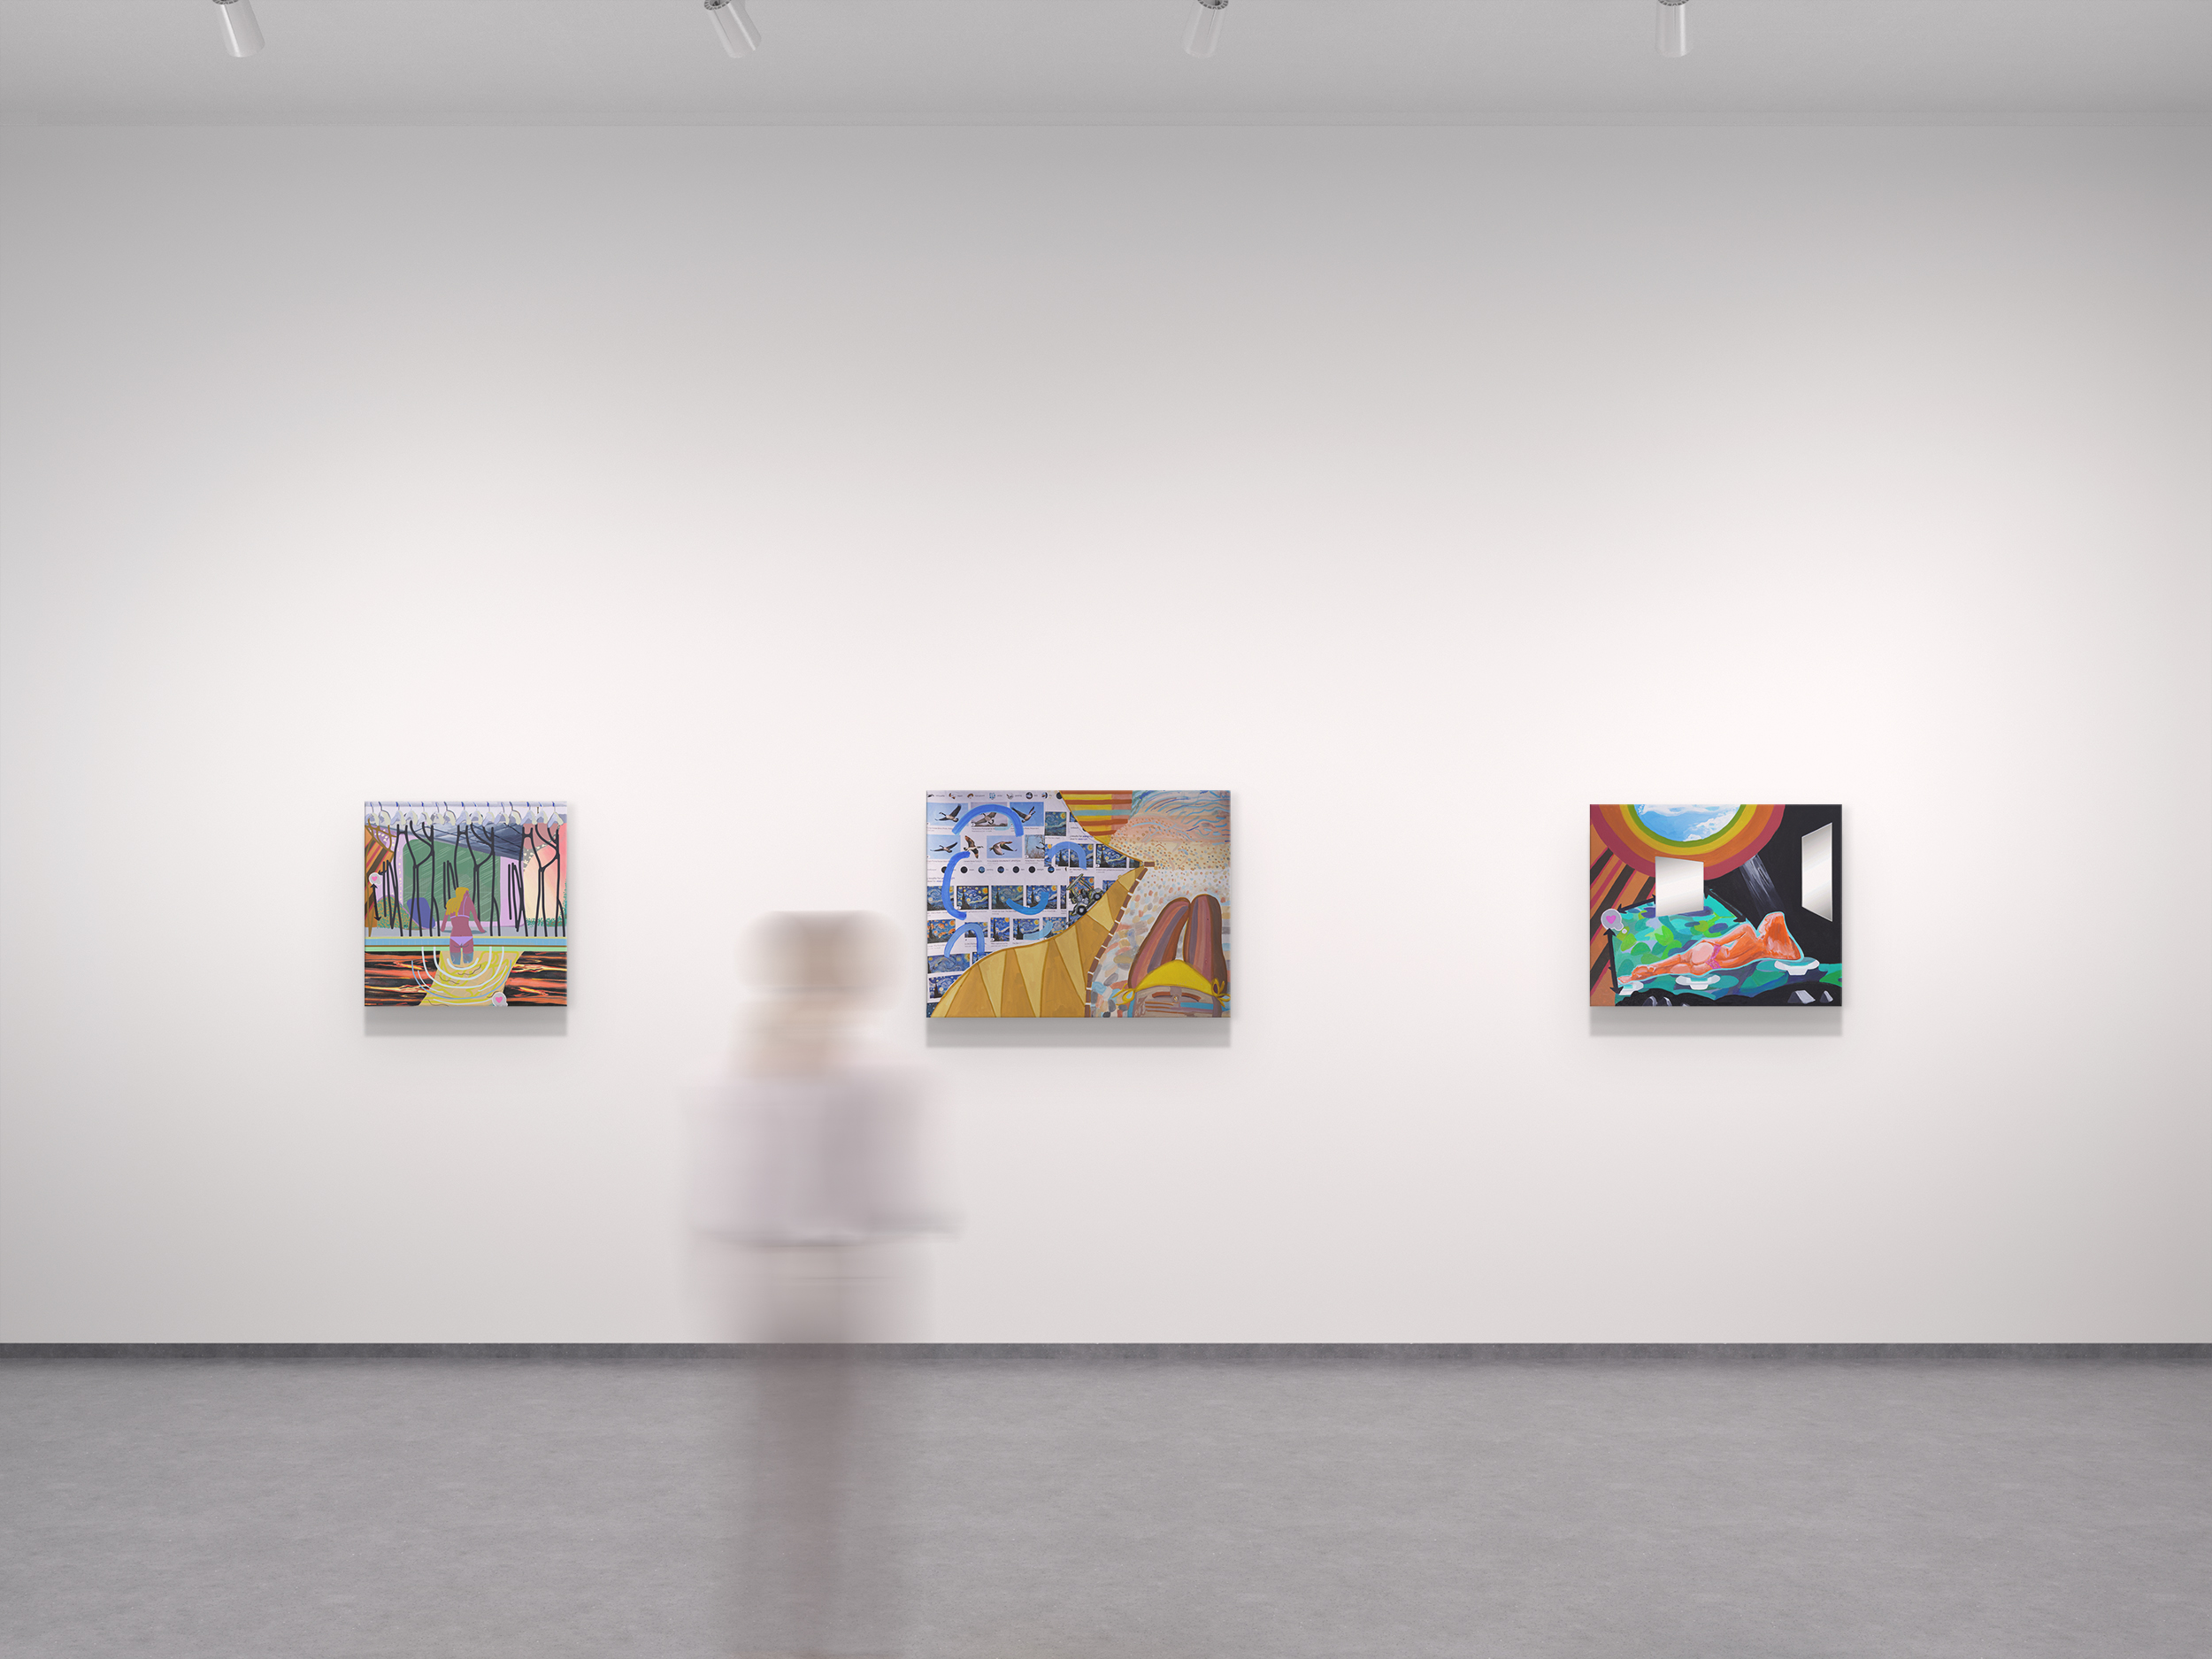 5_Madeline-Bohrer Gallery_frontal_02_2500x1875px